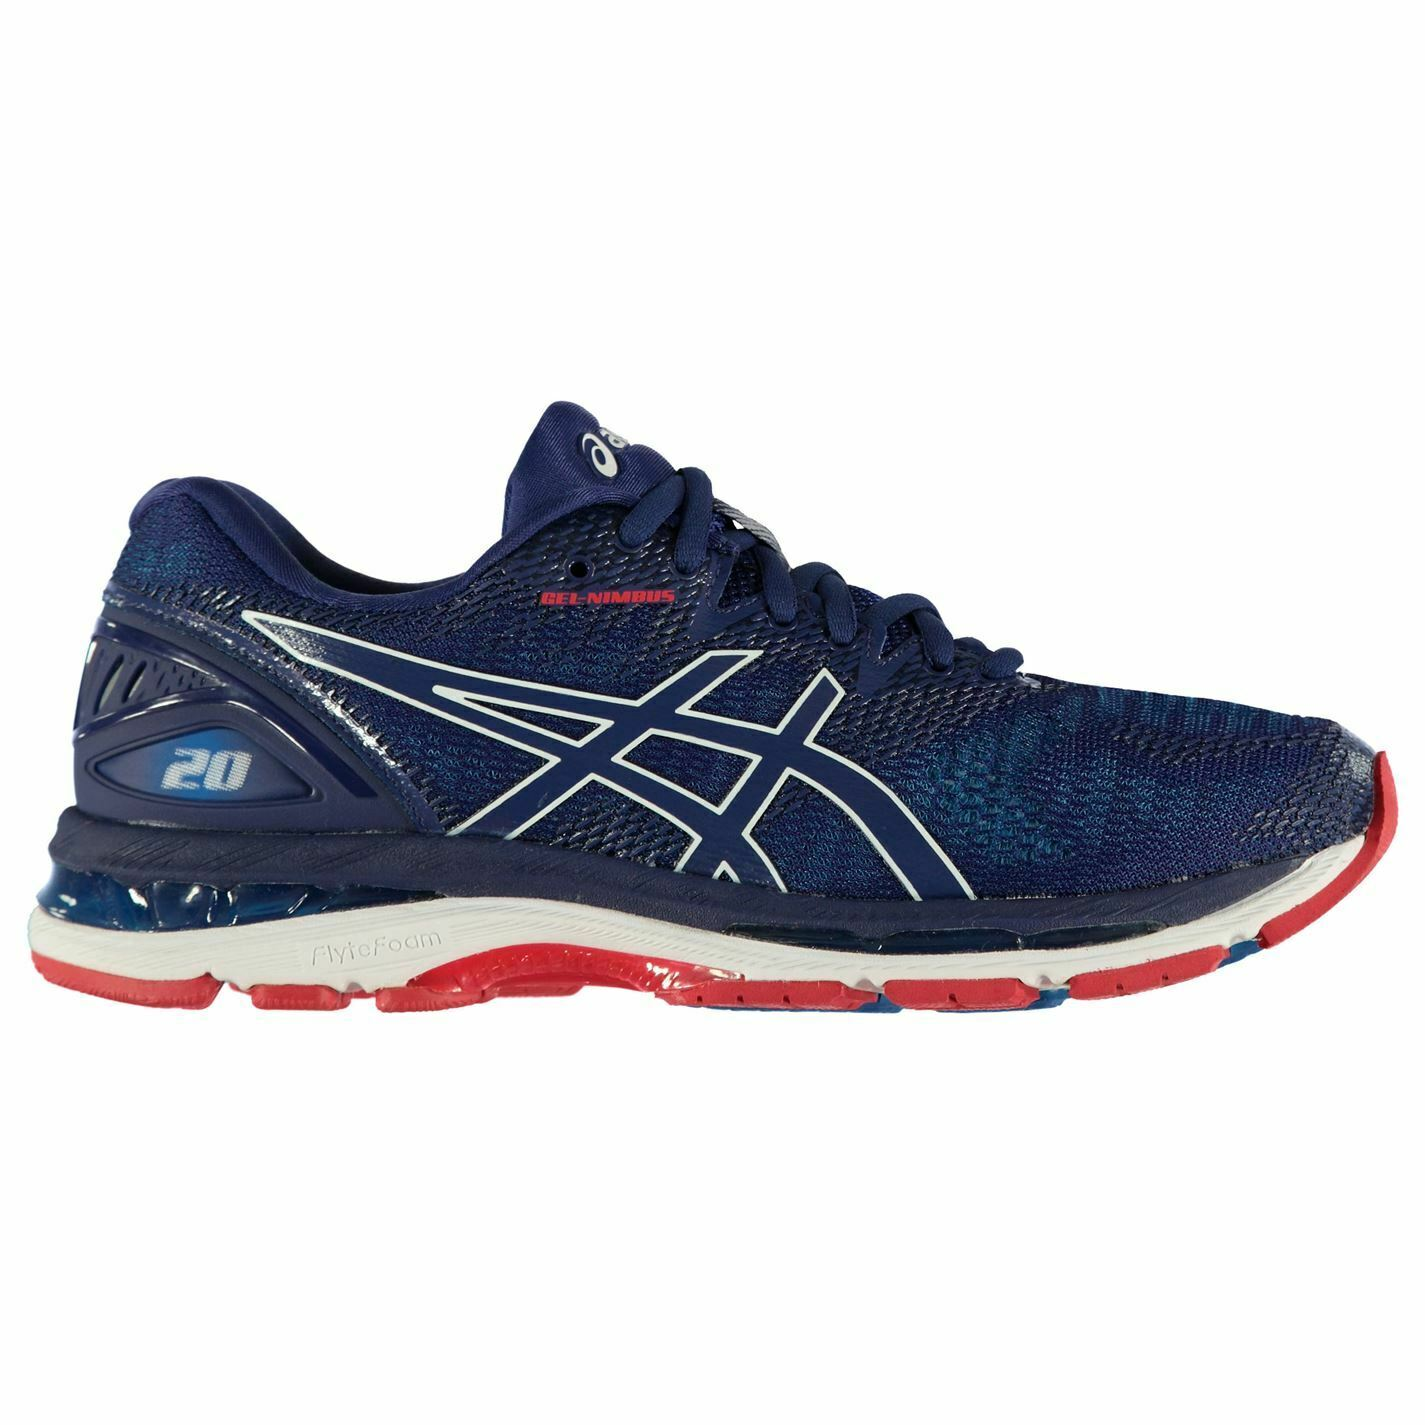 Asics Mens Gel Nimbus 20 Running shoes Sport Athletic Trainers Sneakers